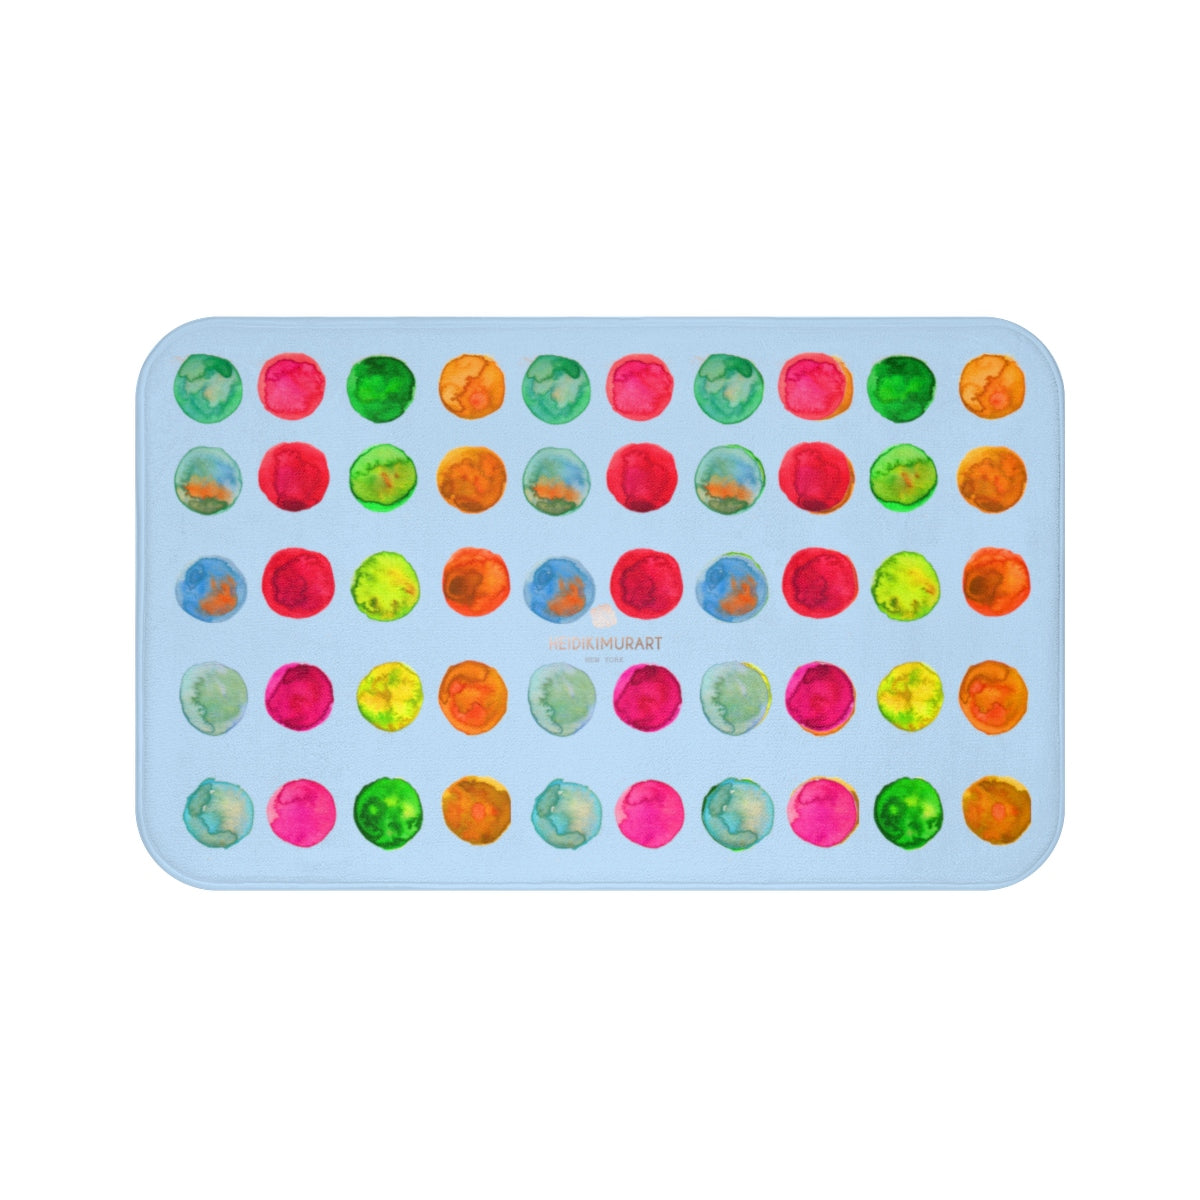 Polka Dot Bath Mat, Baby Pastel Blue Colorful Dots Print Microfiber Bath Mat- Made in USA-Bath Mat-Large 34x21-Heidi Kimura Art LLC